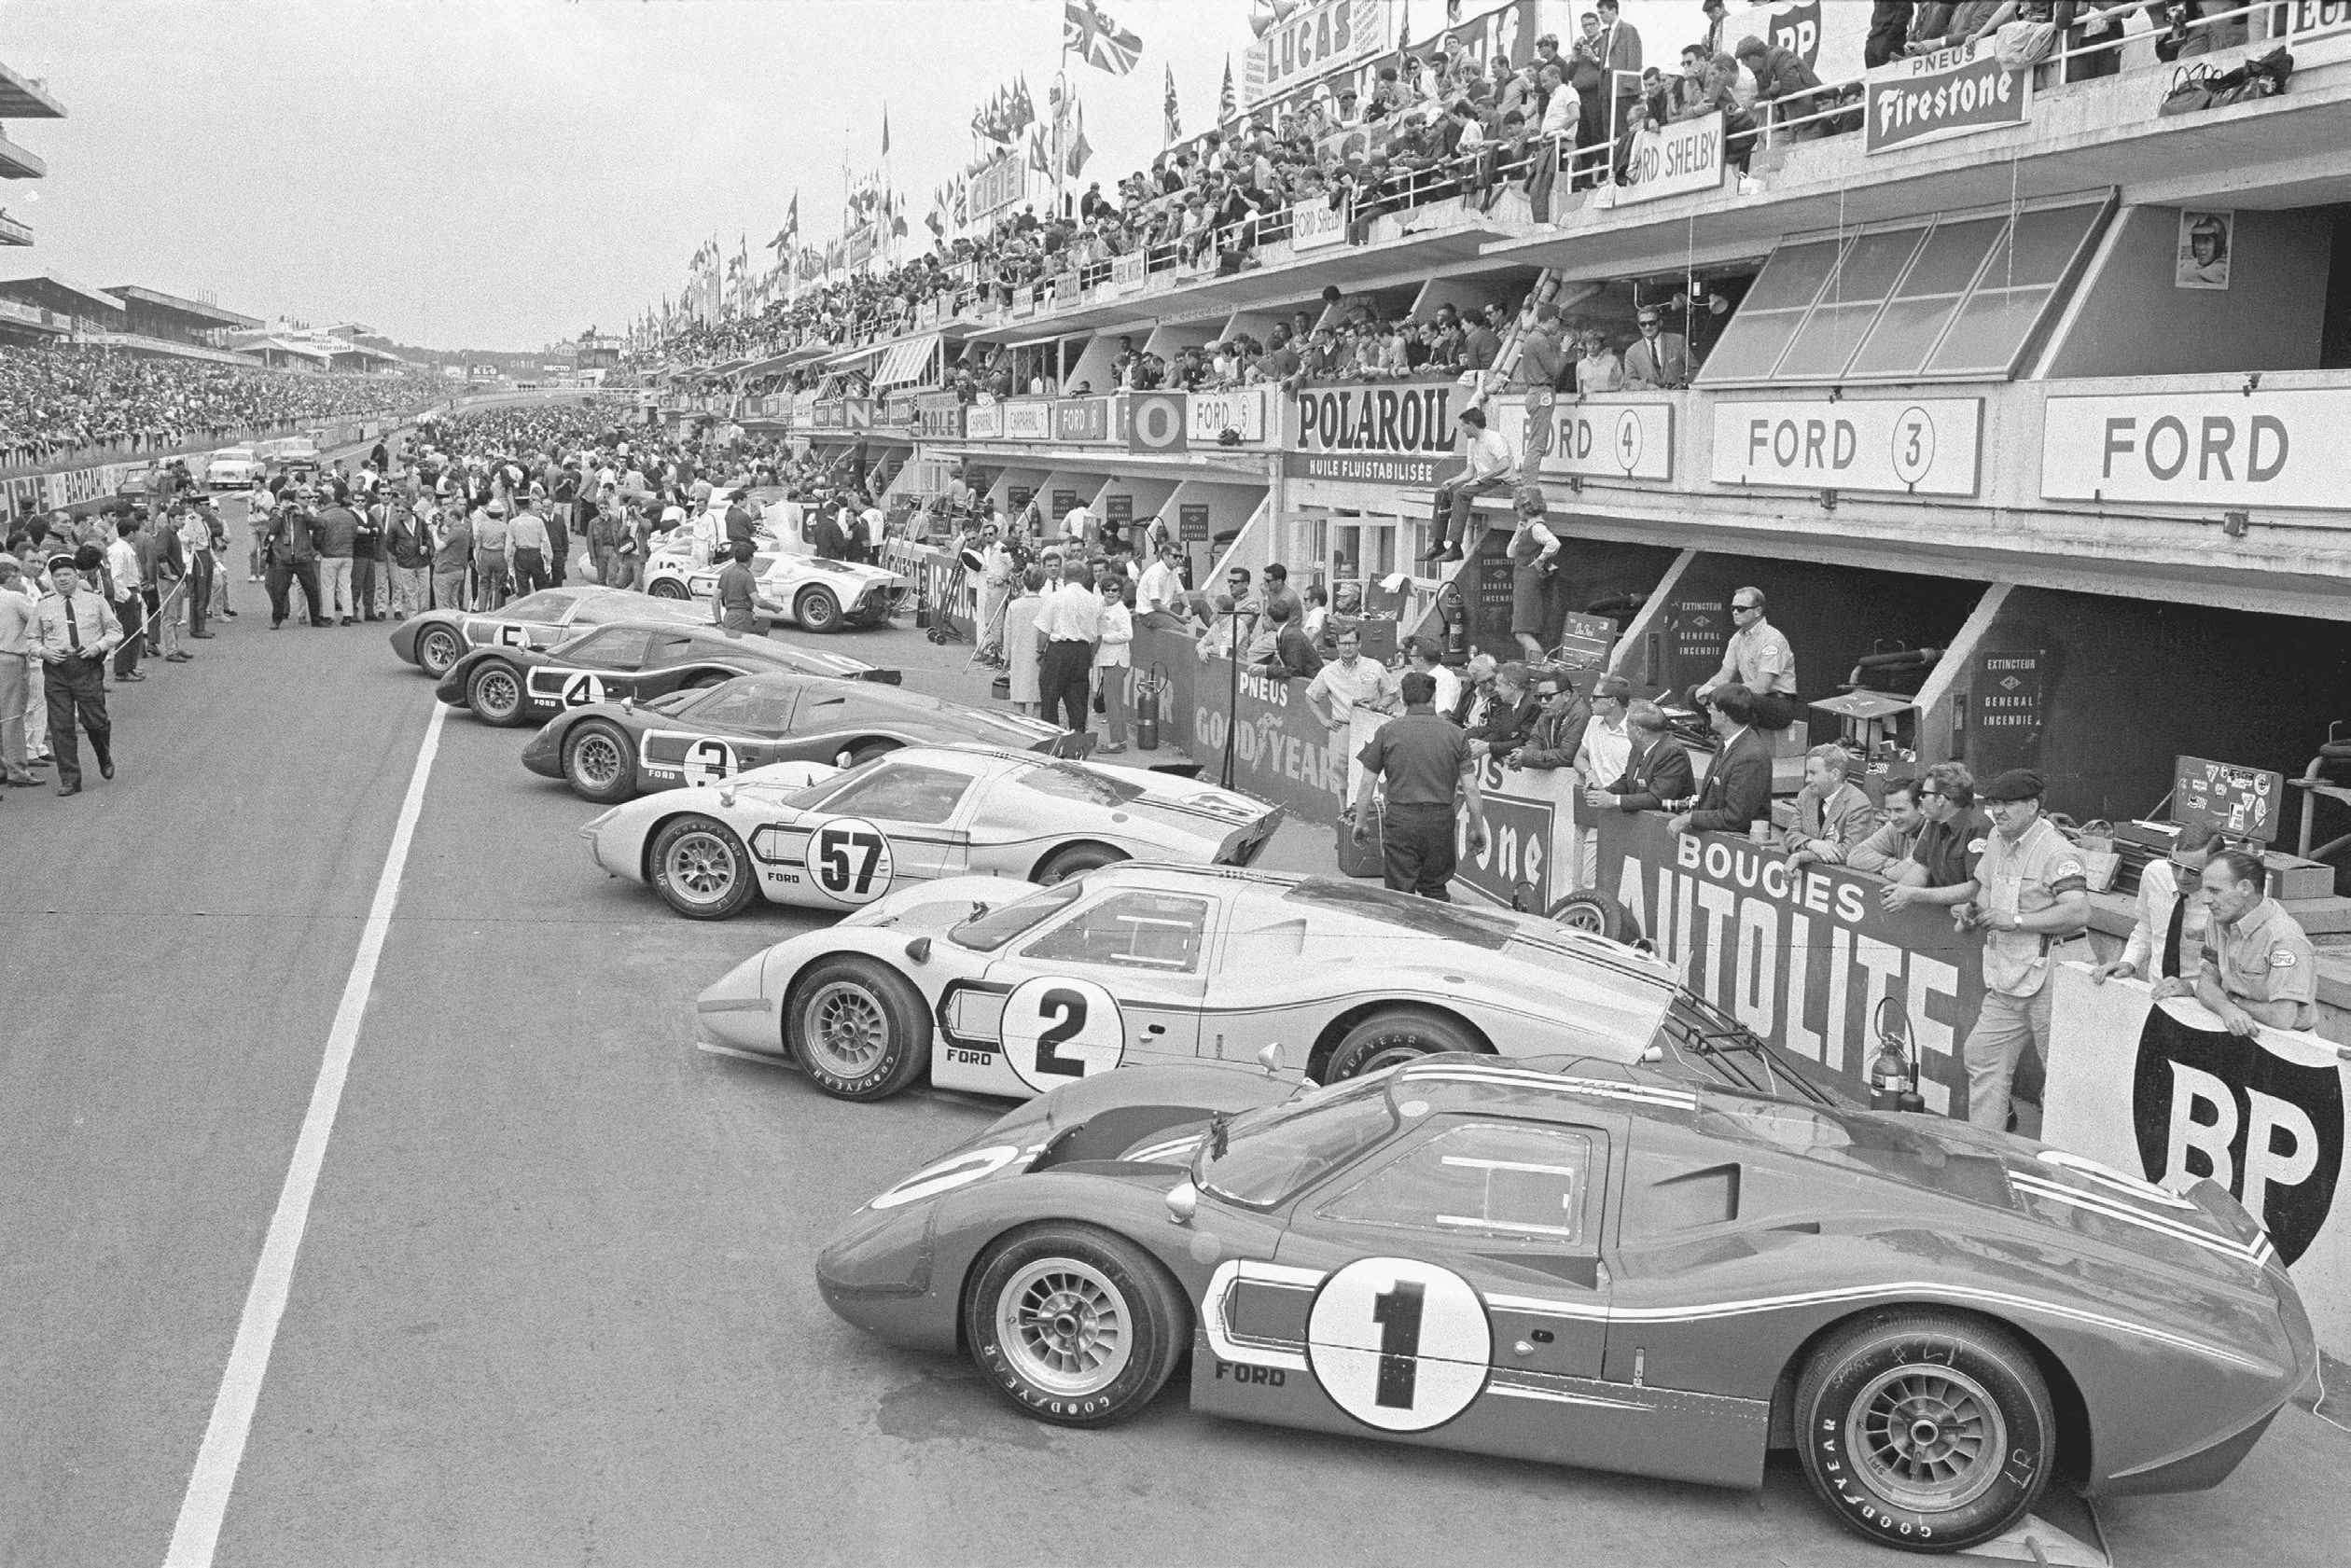 A posed prerace shot shows the Ford armada at Le Mans. The three Shelby entries are Nos. 1, 2, and 57, while Nos. 3, 4, and 5 belong to Holman & Moody. The white Ford France entry, driven by Jo Schlesser and Guy Ligier, is parked just beyond.